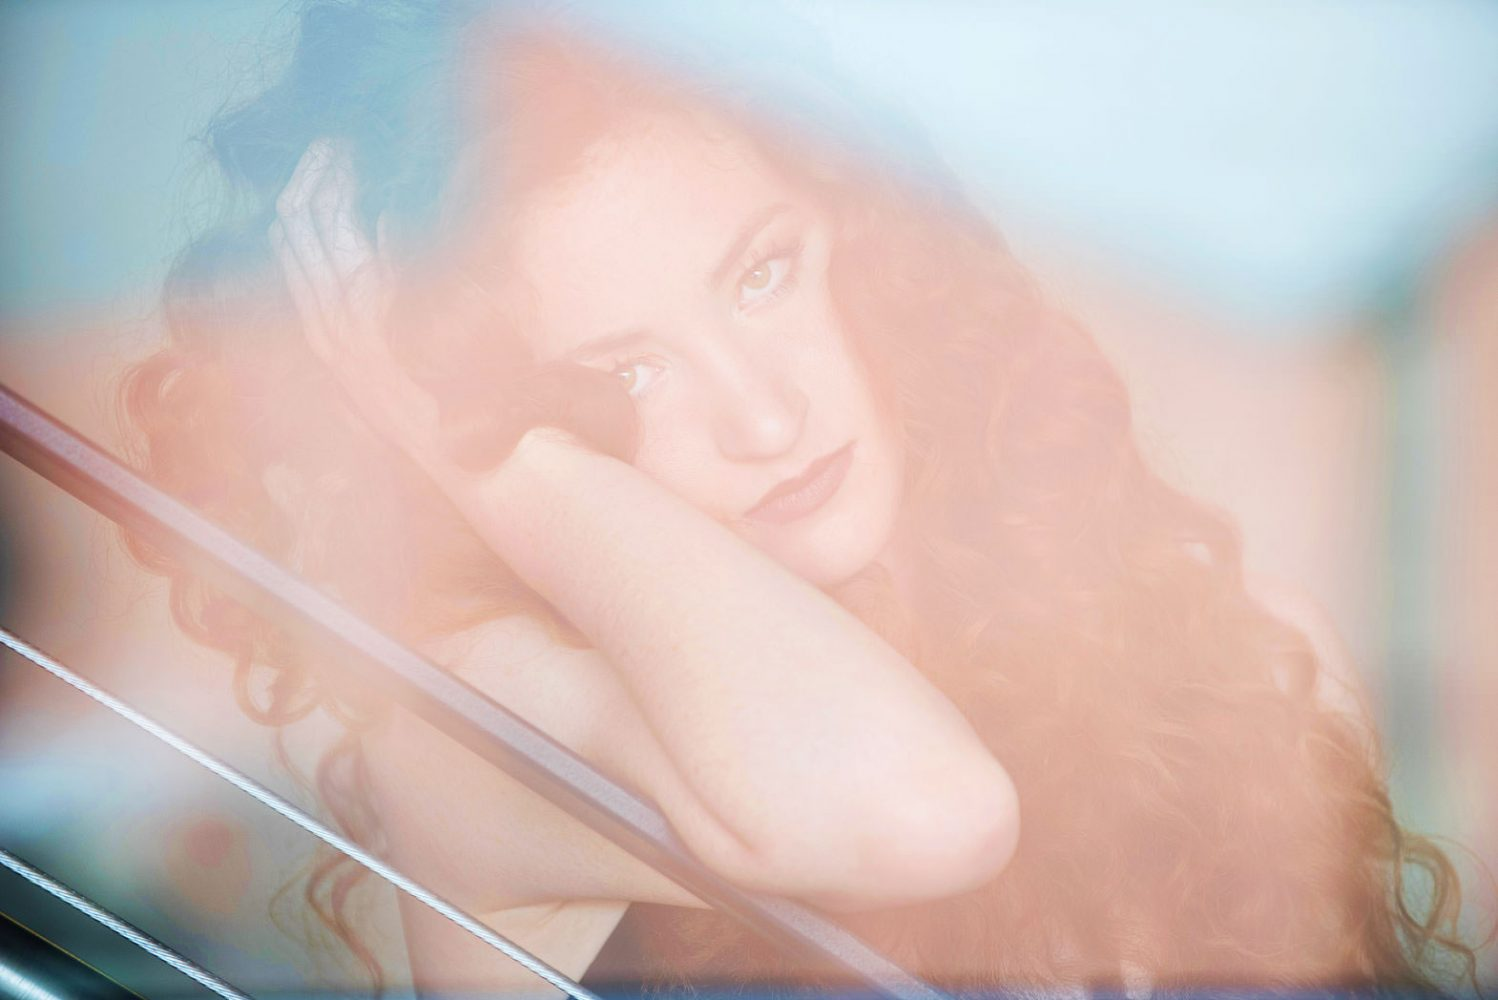 07-photonuvo-senior-pictures-beauty-reflection